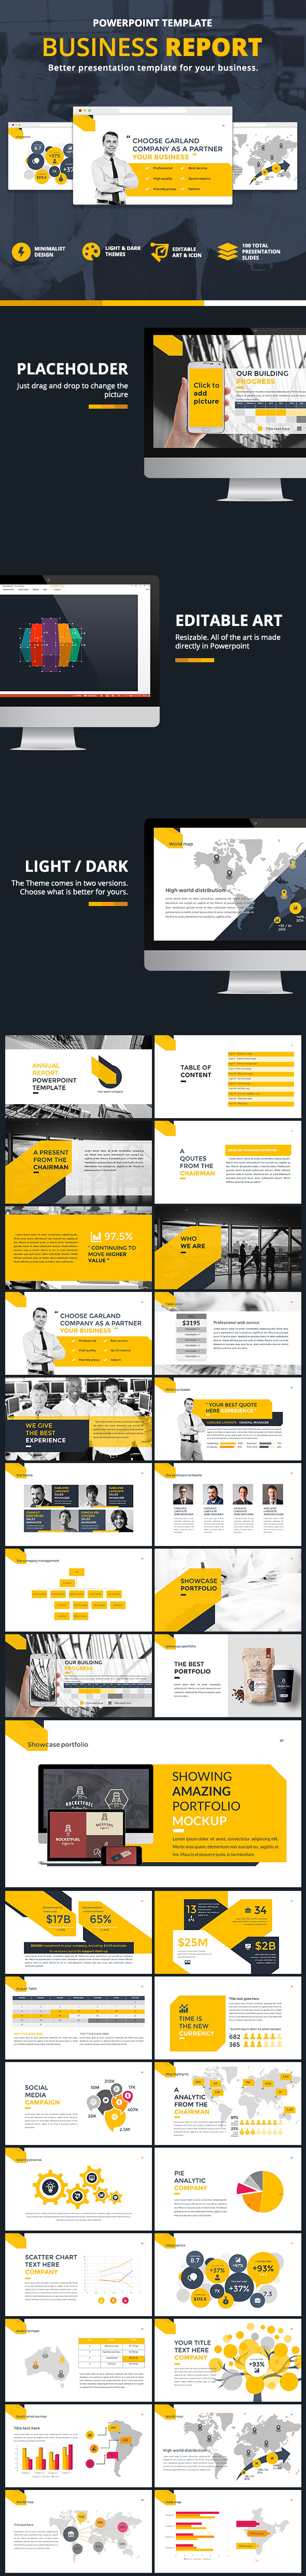 Business Report Presentation - Business PowerPoint Templates